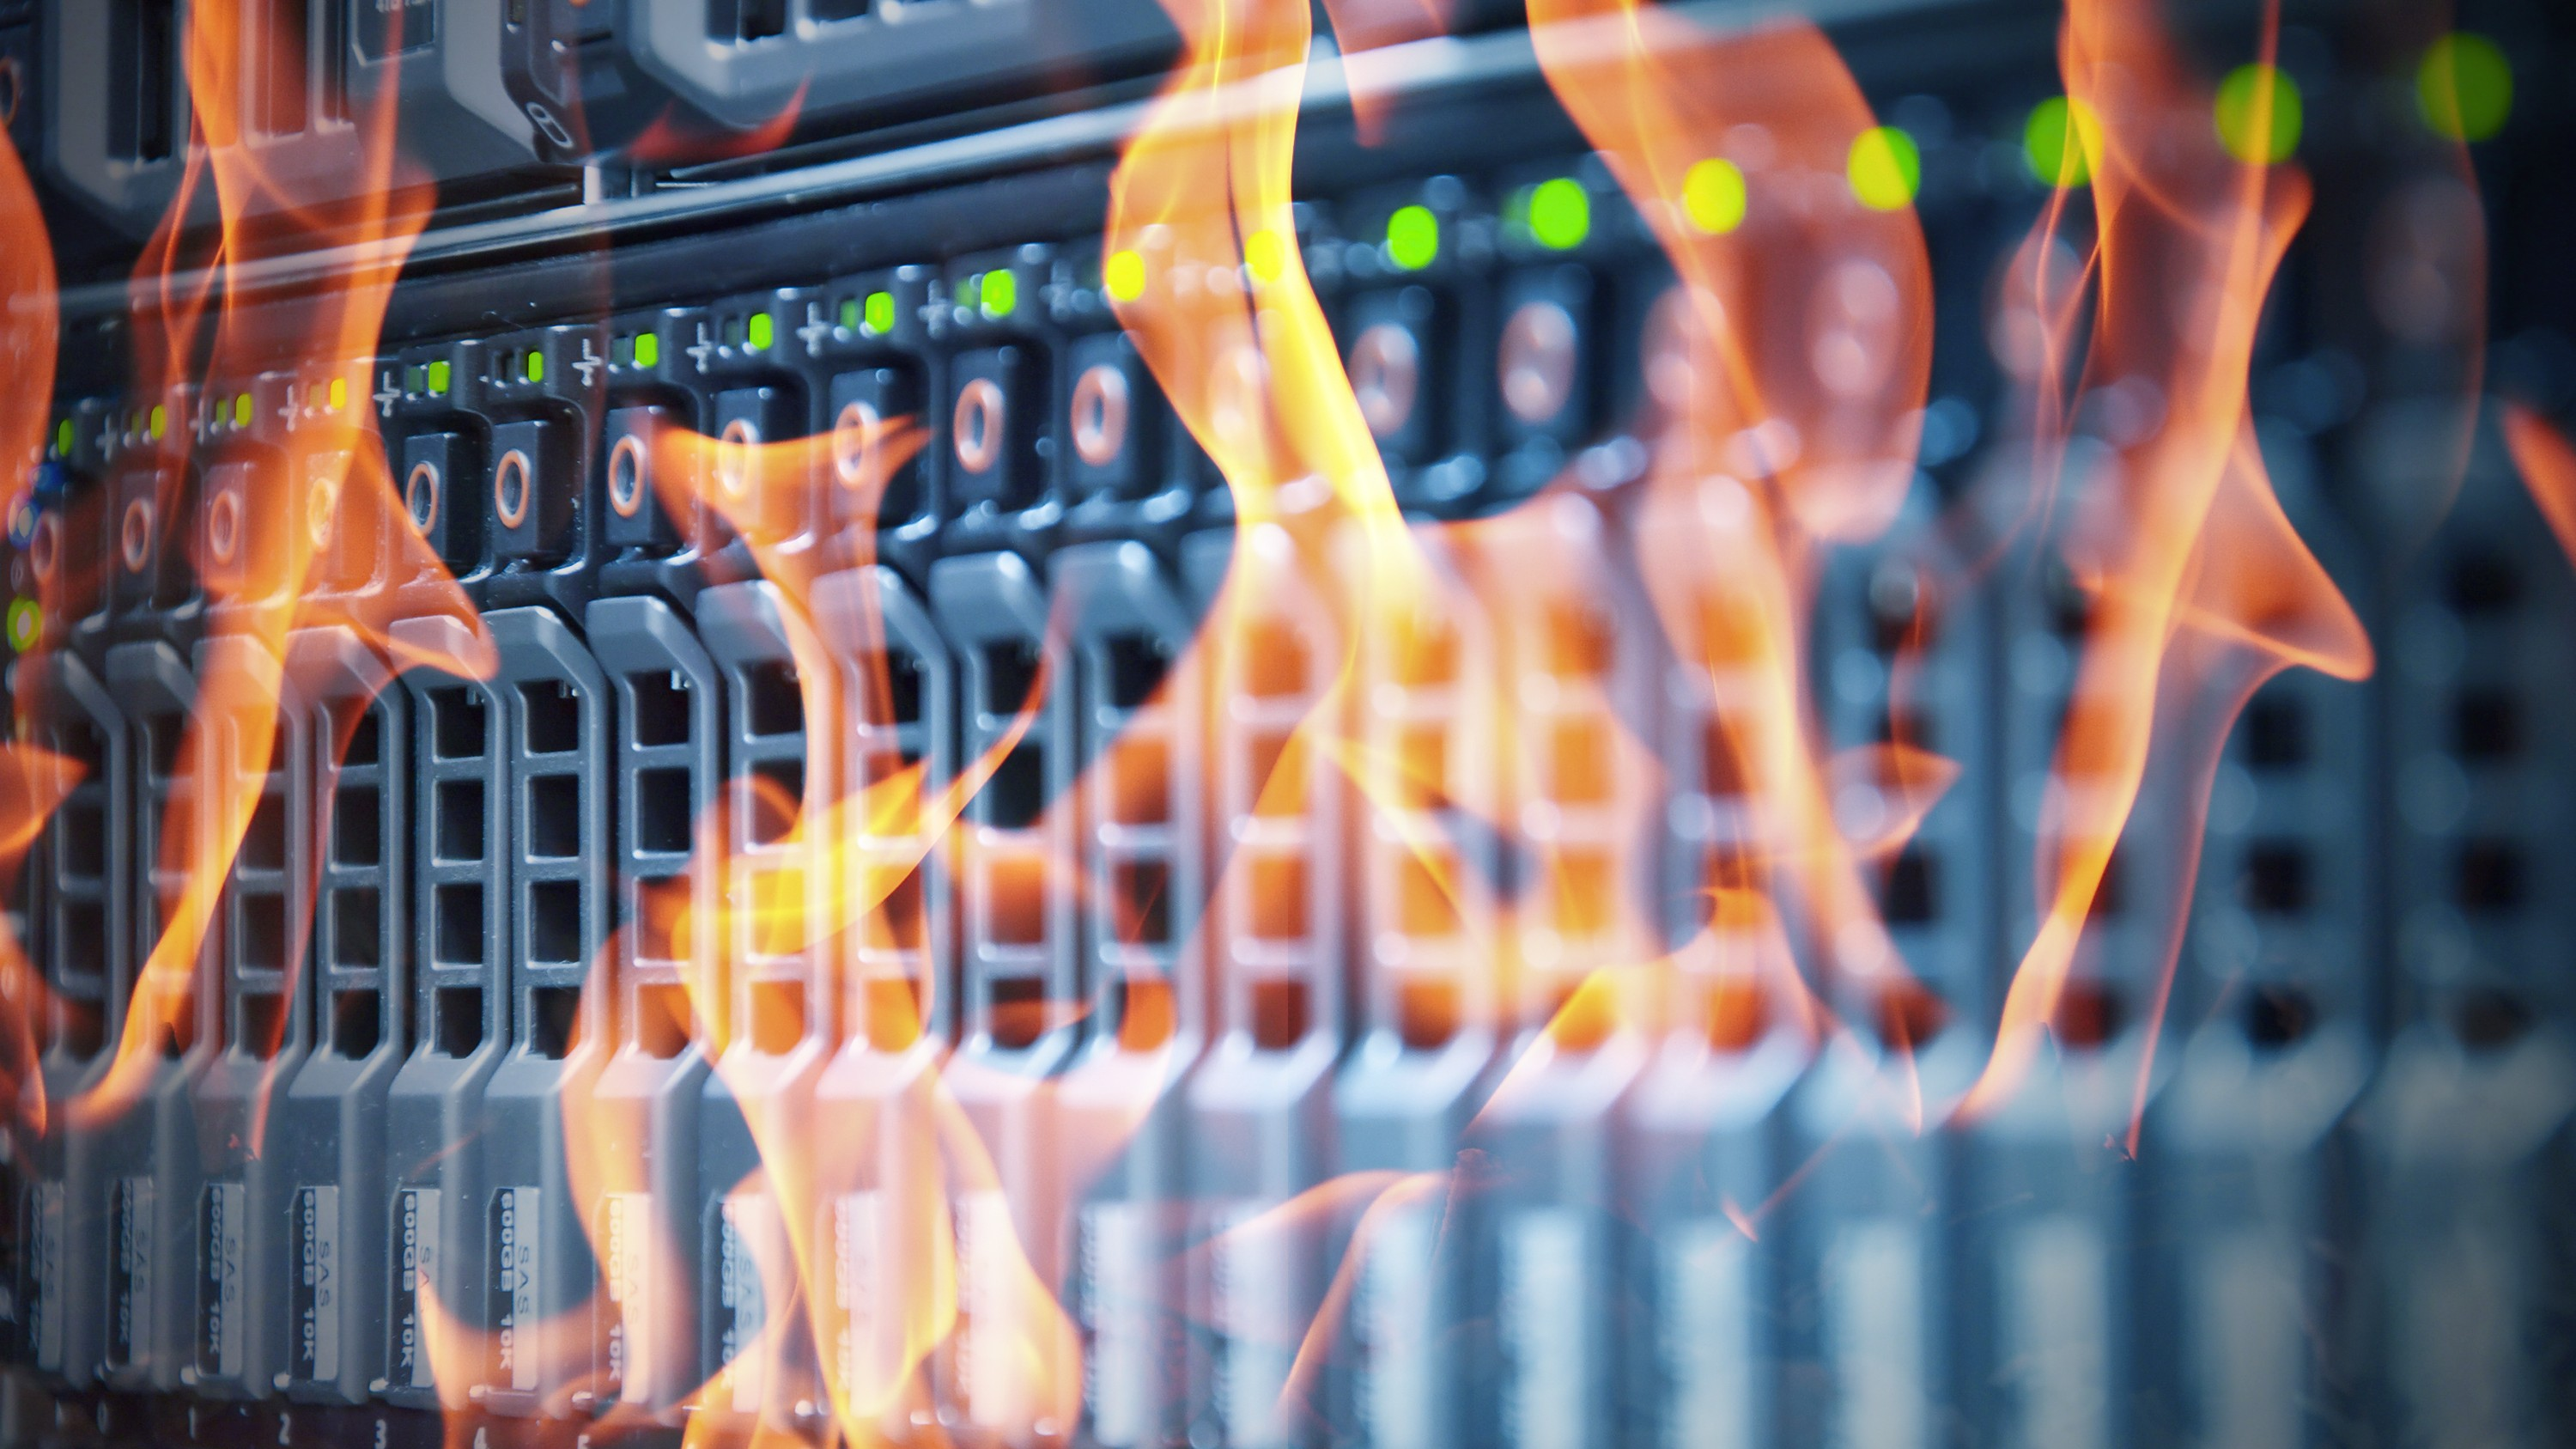 Journalist Hit By Record DDoS Attack: 'I'm Kind of Like Plutonium Right Now'